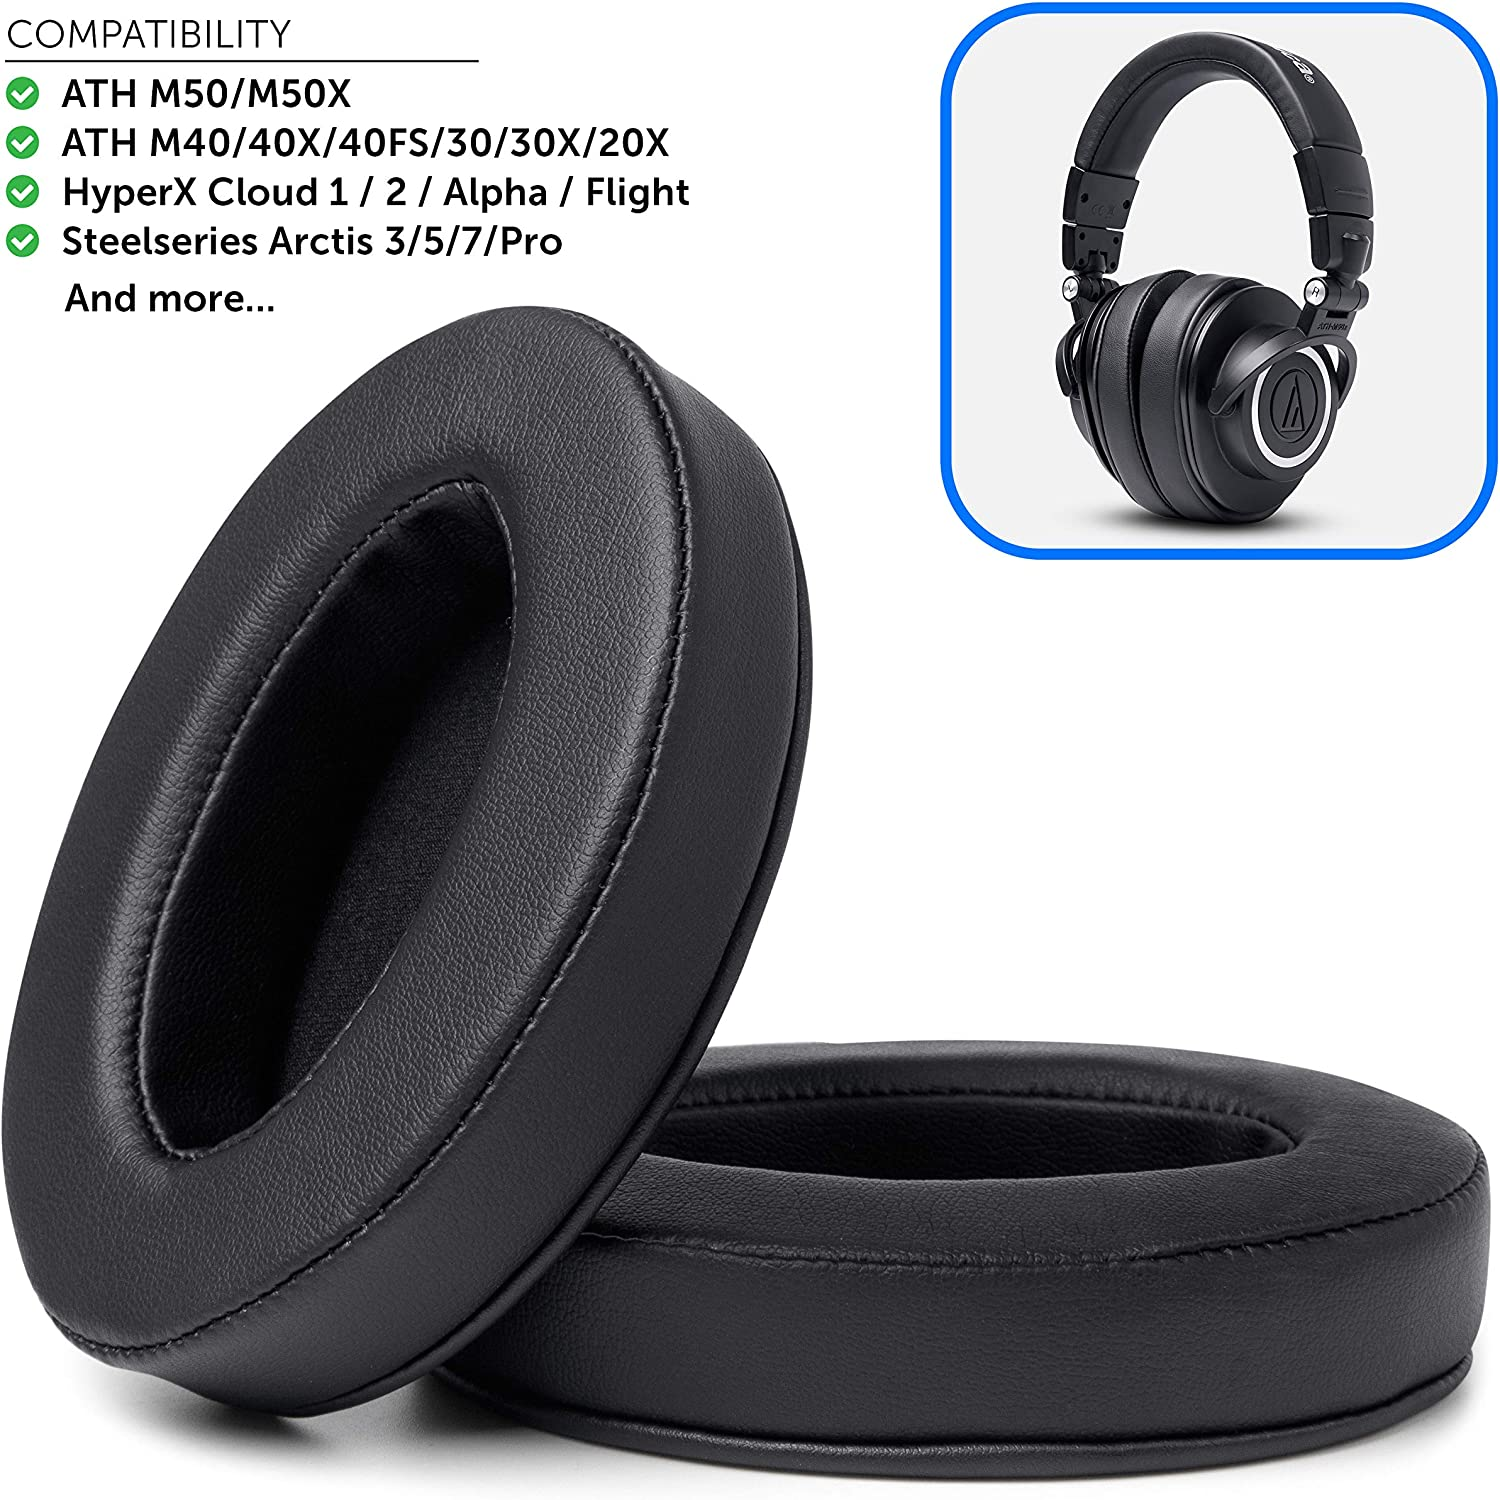 Upgraded ATH M50X Earpads Made by Wicked Cushions - Compatible with Audio Technica M40X / M30X / M20X / M50XBT / HyperX Cloud/SteelSeries Arctis/Turtle Beach Recon & More (Full List Inside)